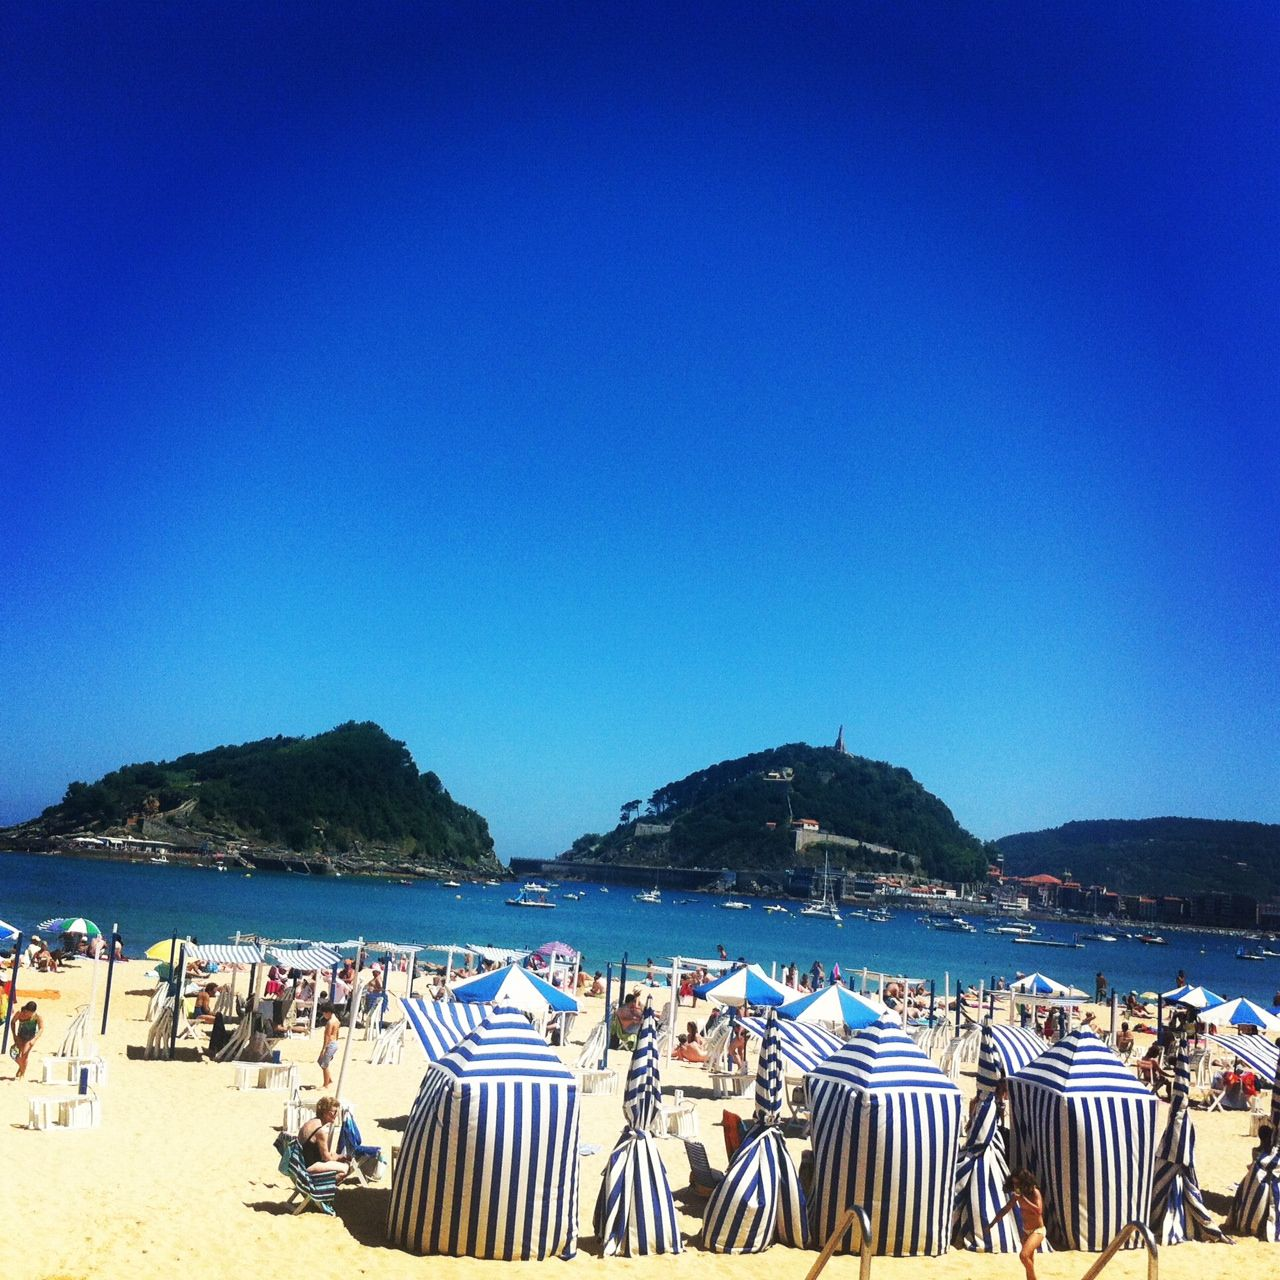 Donostia, Basque Country, Spain--Coastal beaches are a summertime draw, but the region is also home to a famous cuisine and to lively and interesting cities like Bilbao, with its Guggenheim Museum, and the great Belle Epoque resort of San Sebastian.